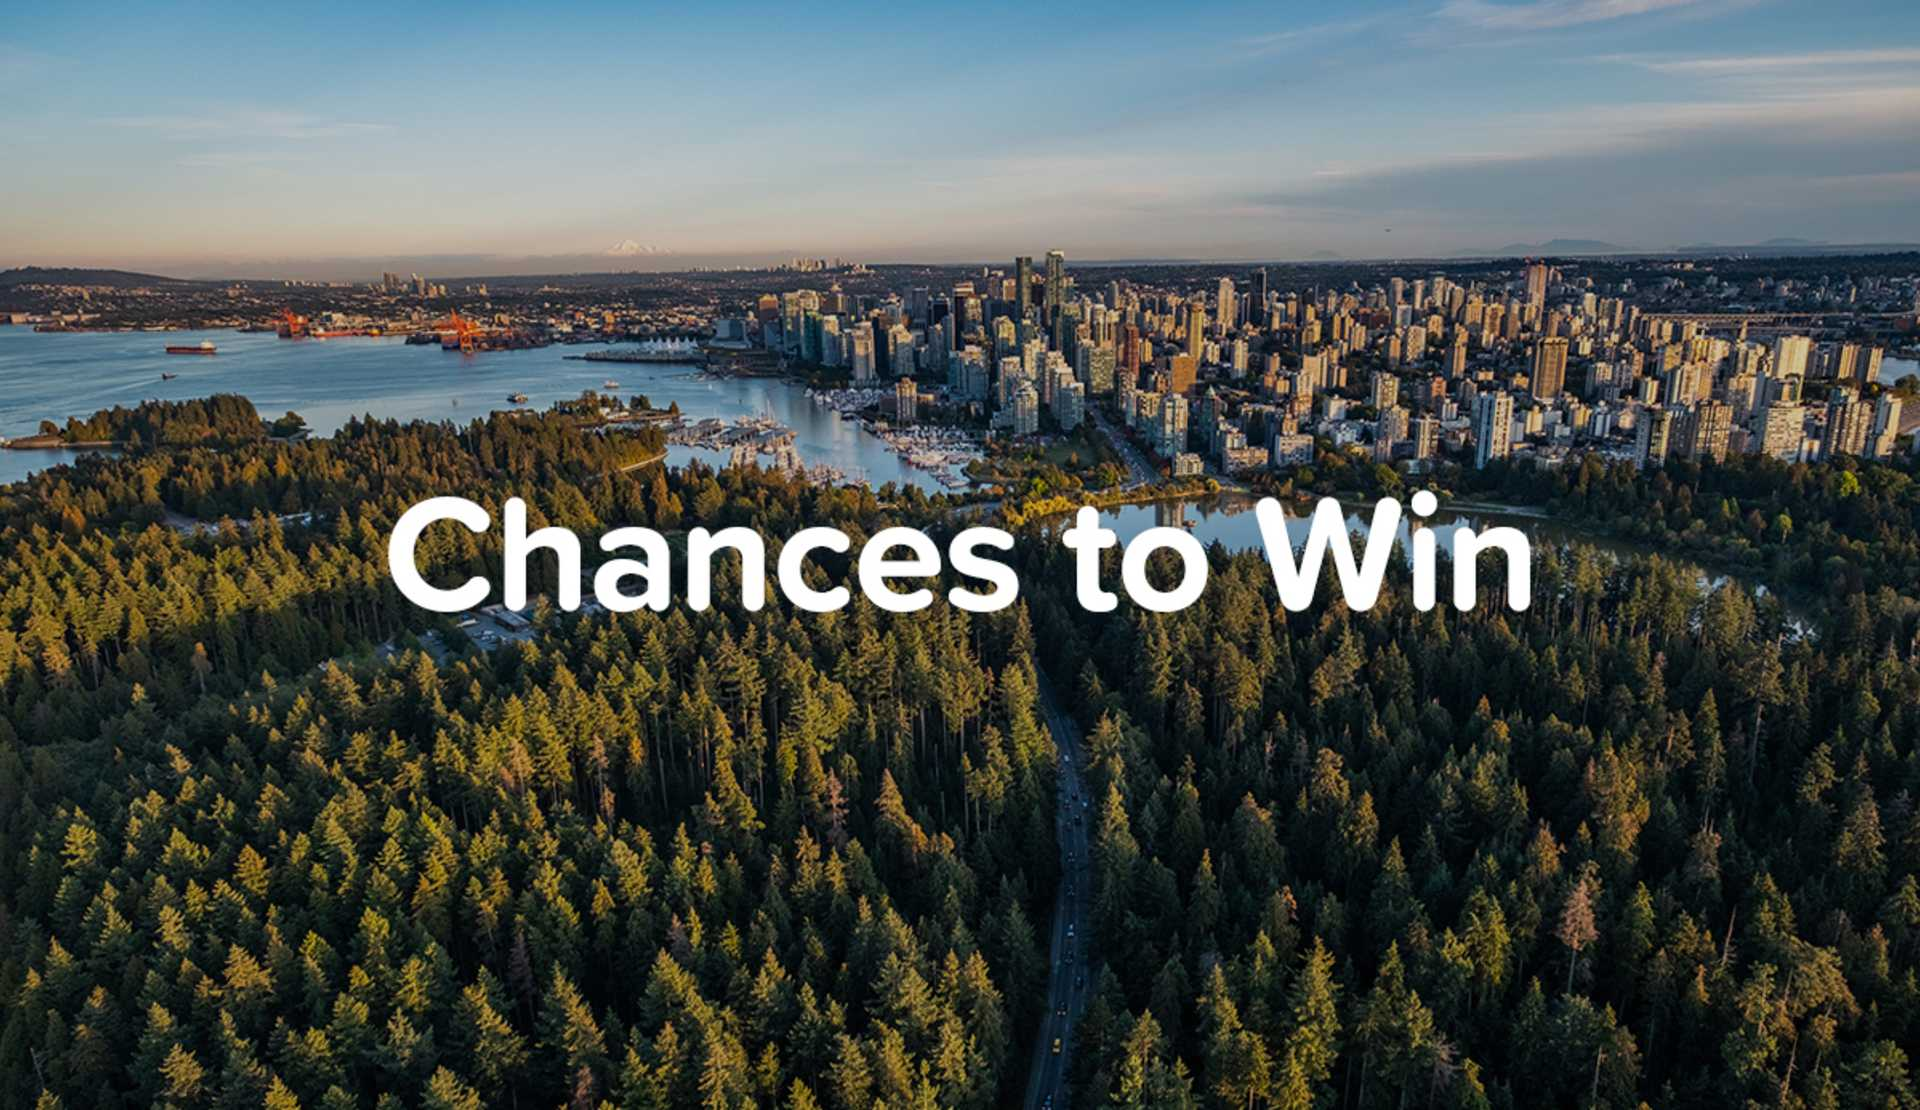 Chances to Win